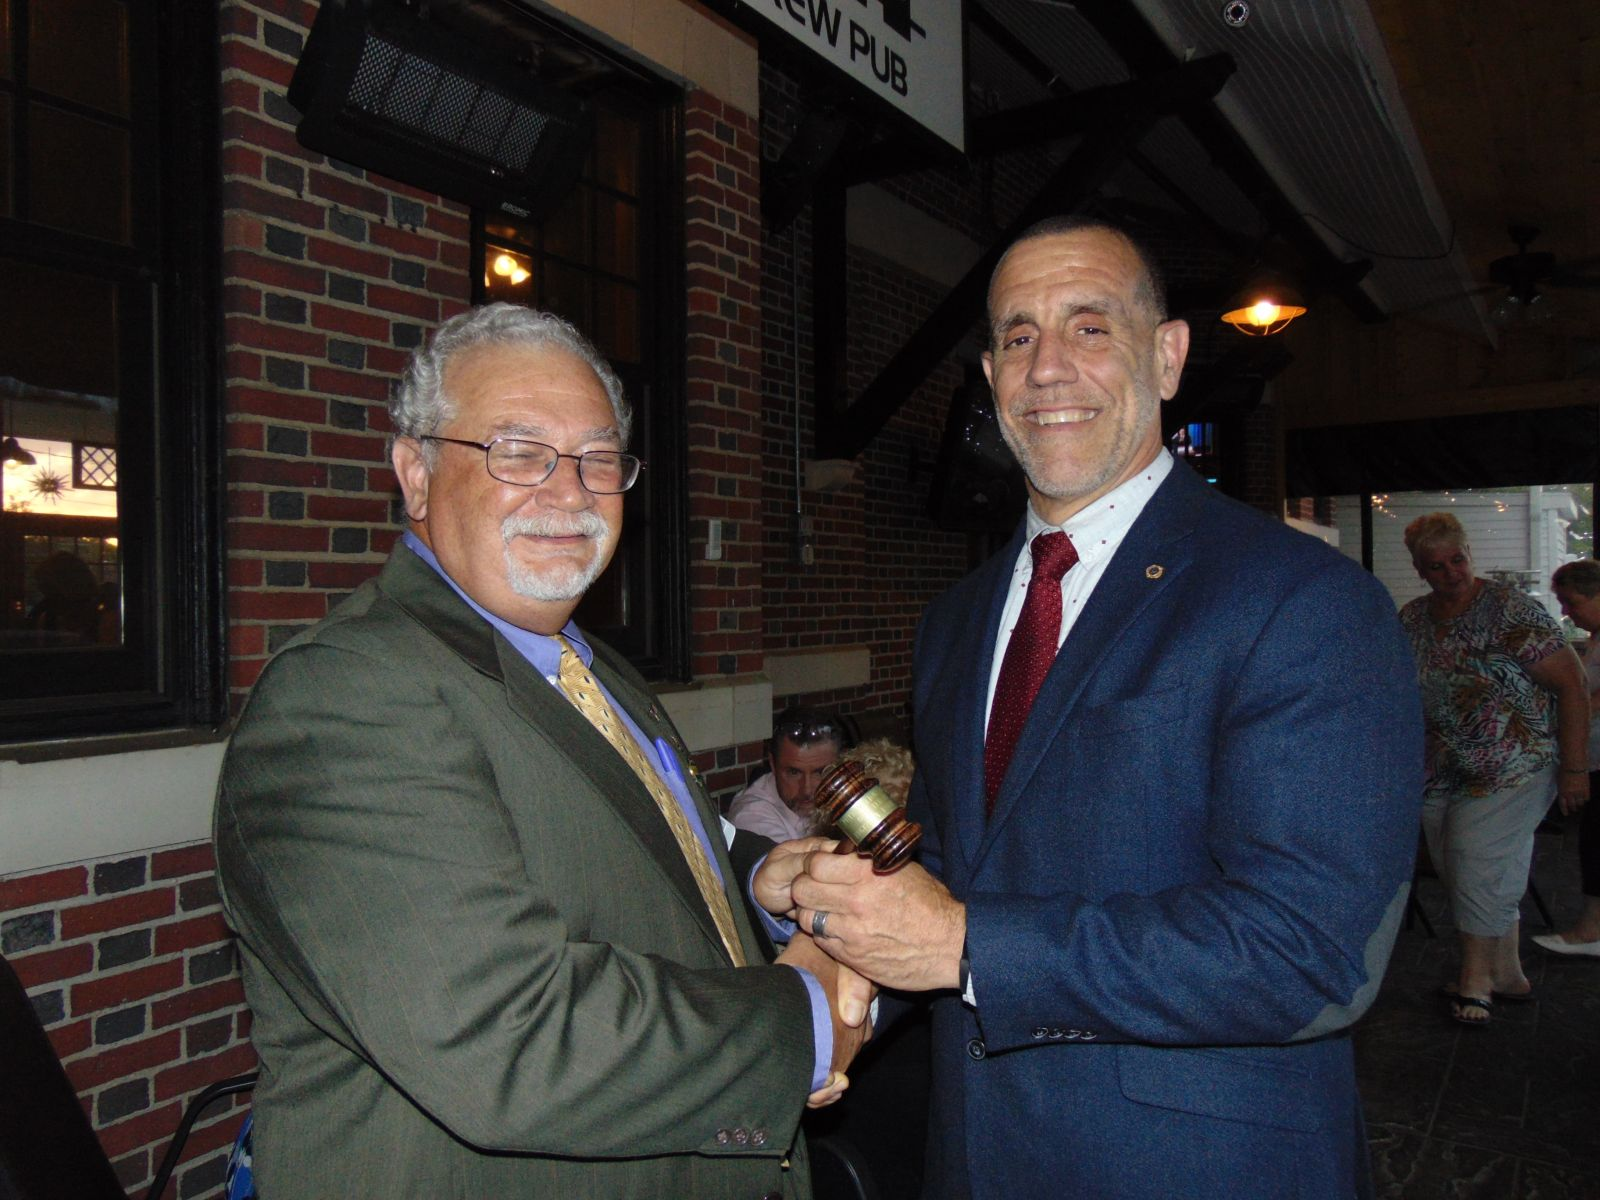 Past President Romeo Blackmar hands gavel to Incoming President Steve Faucher